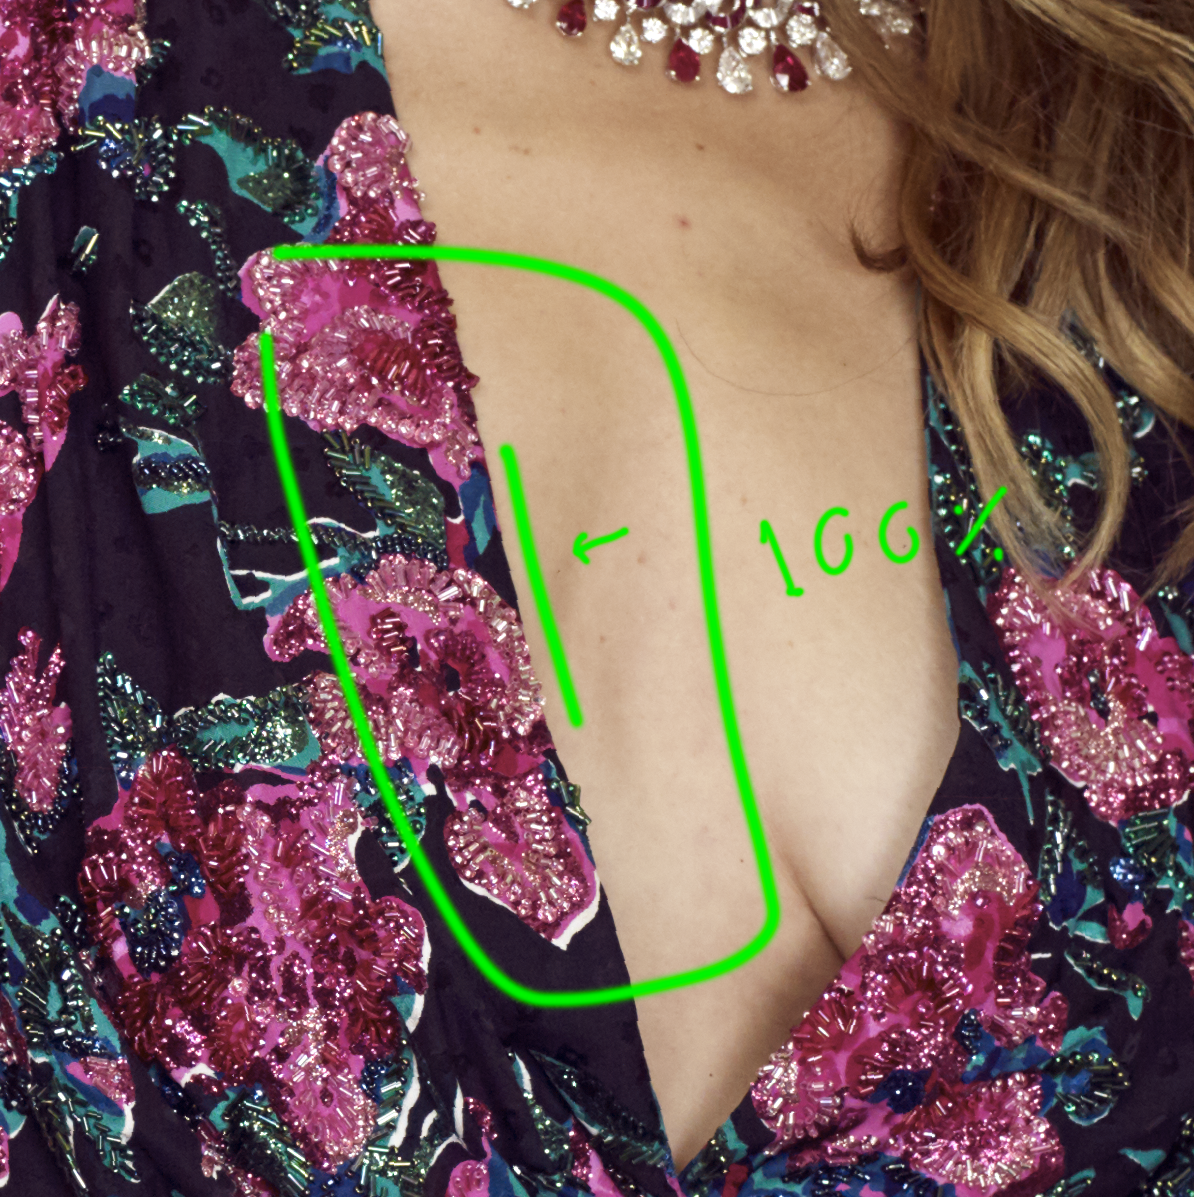 Photoshop When Zoom In Starts To Pixelate The Imag